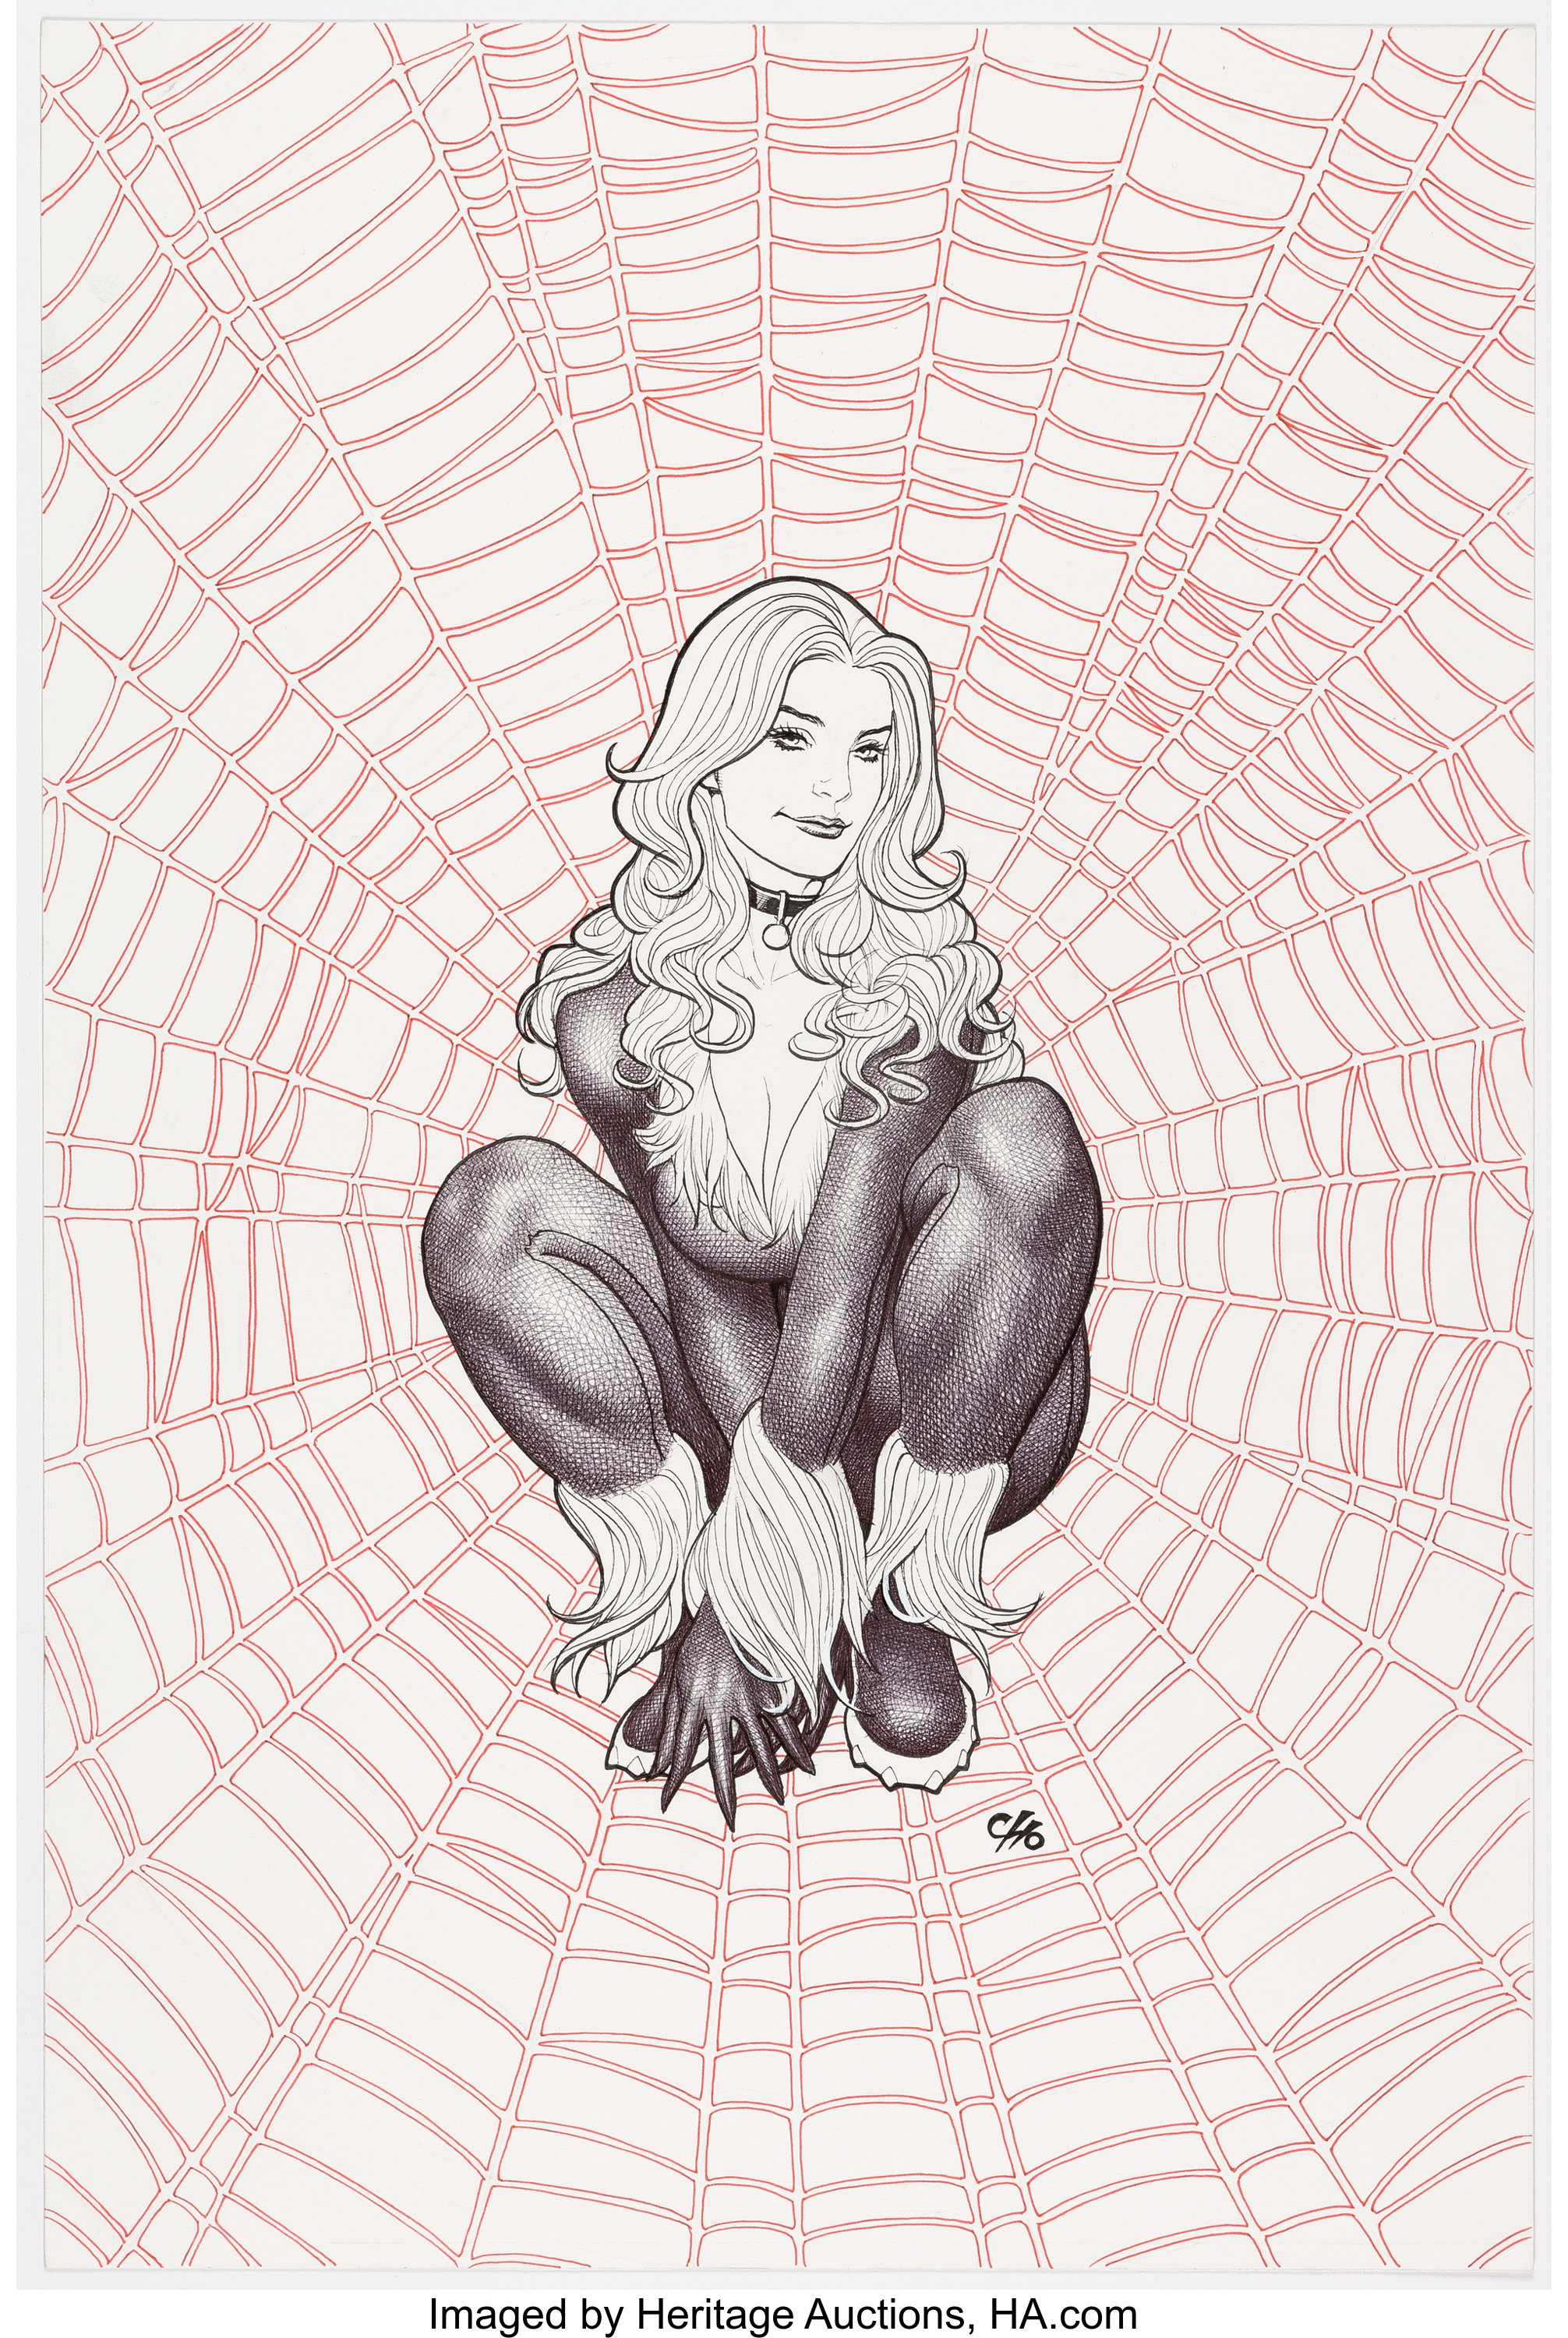 Frank cho black cat unpublished illustration original art c lot 15034 heritage auctions